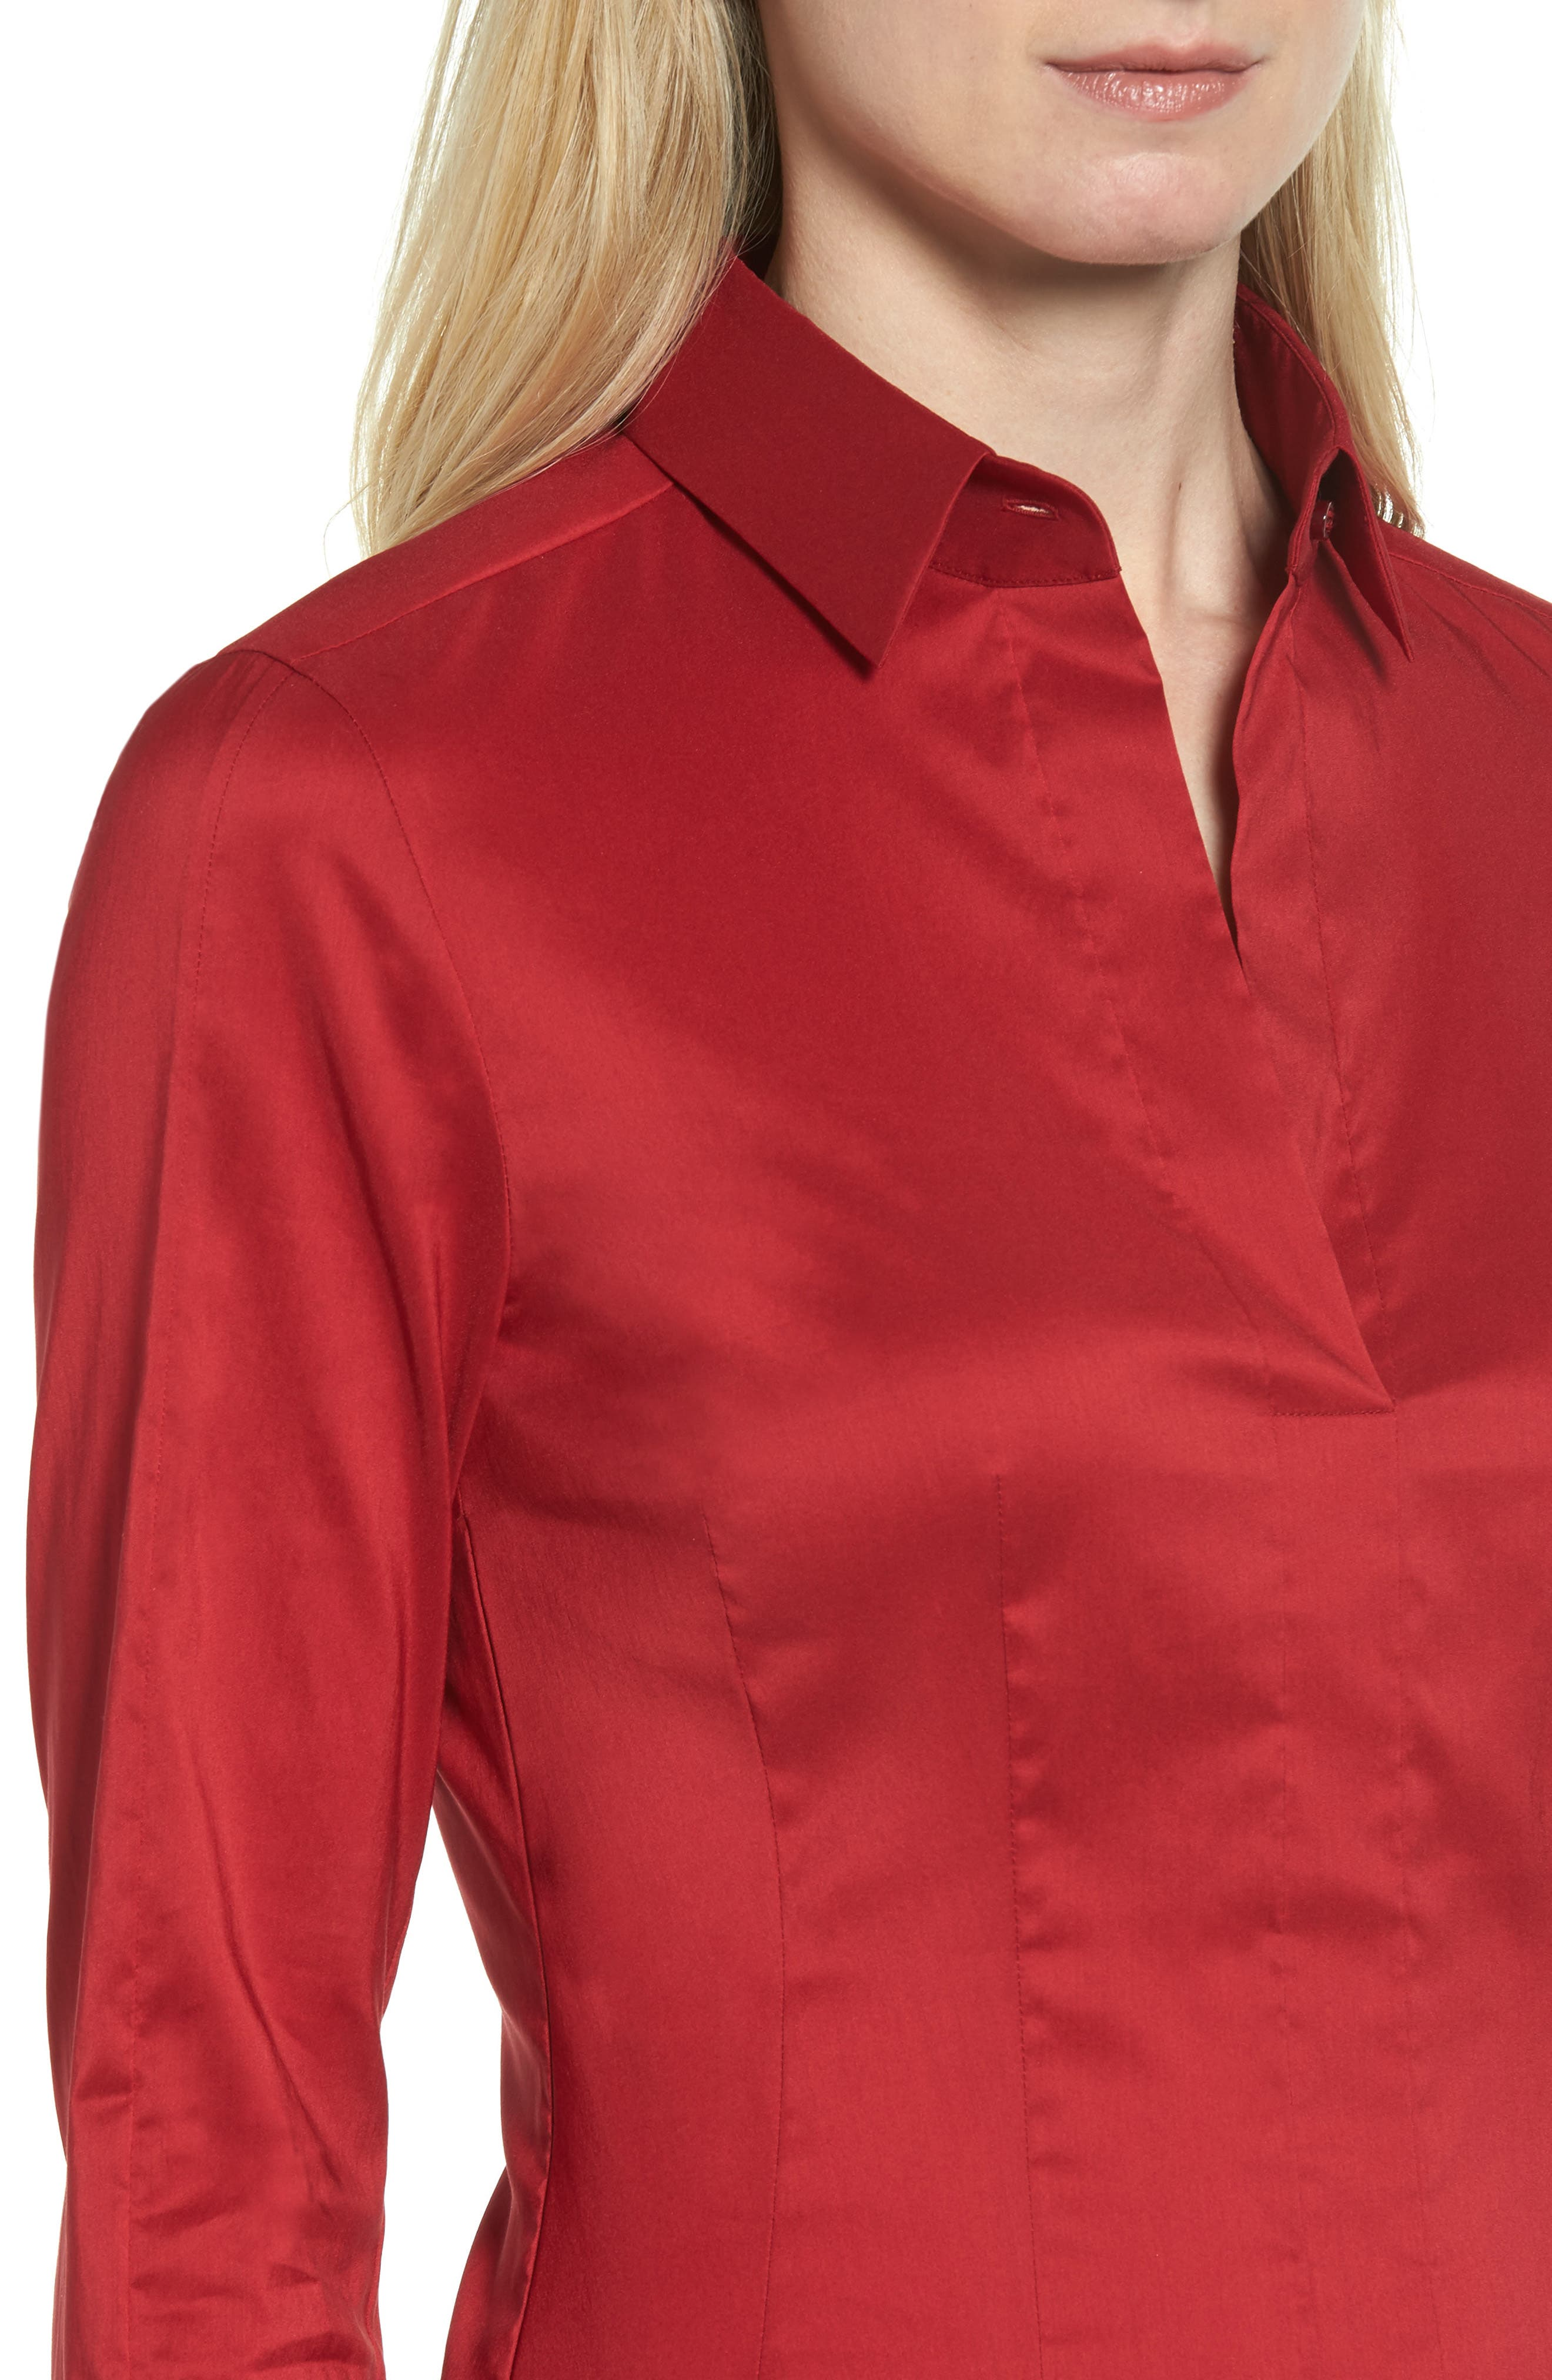 Alternate Image 4  - BOSS 'Bashina' Stretch Poplin Shirt (Regular & Petite)